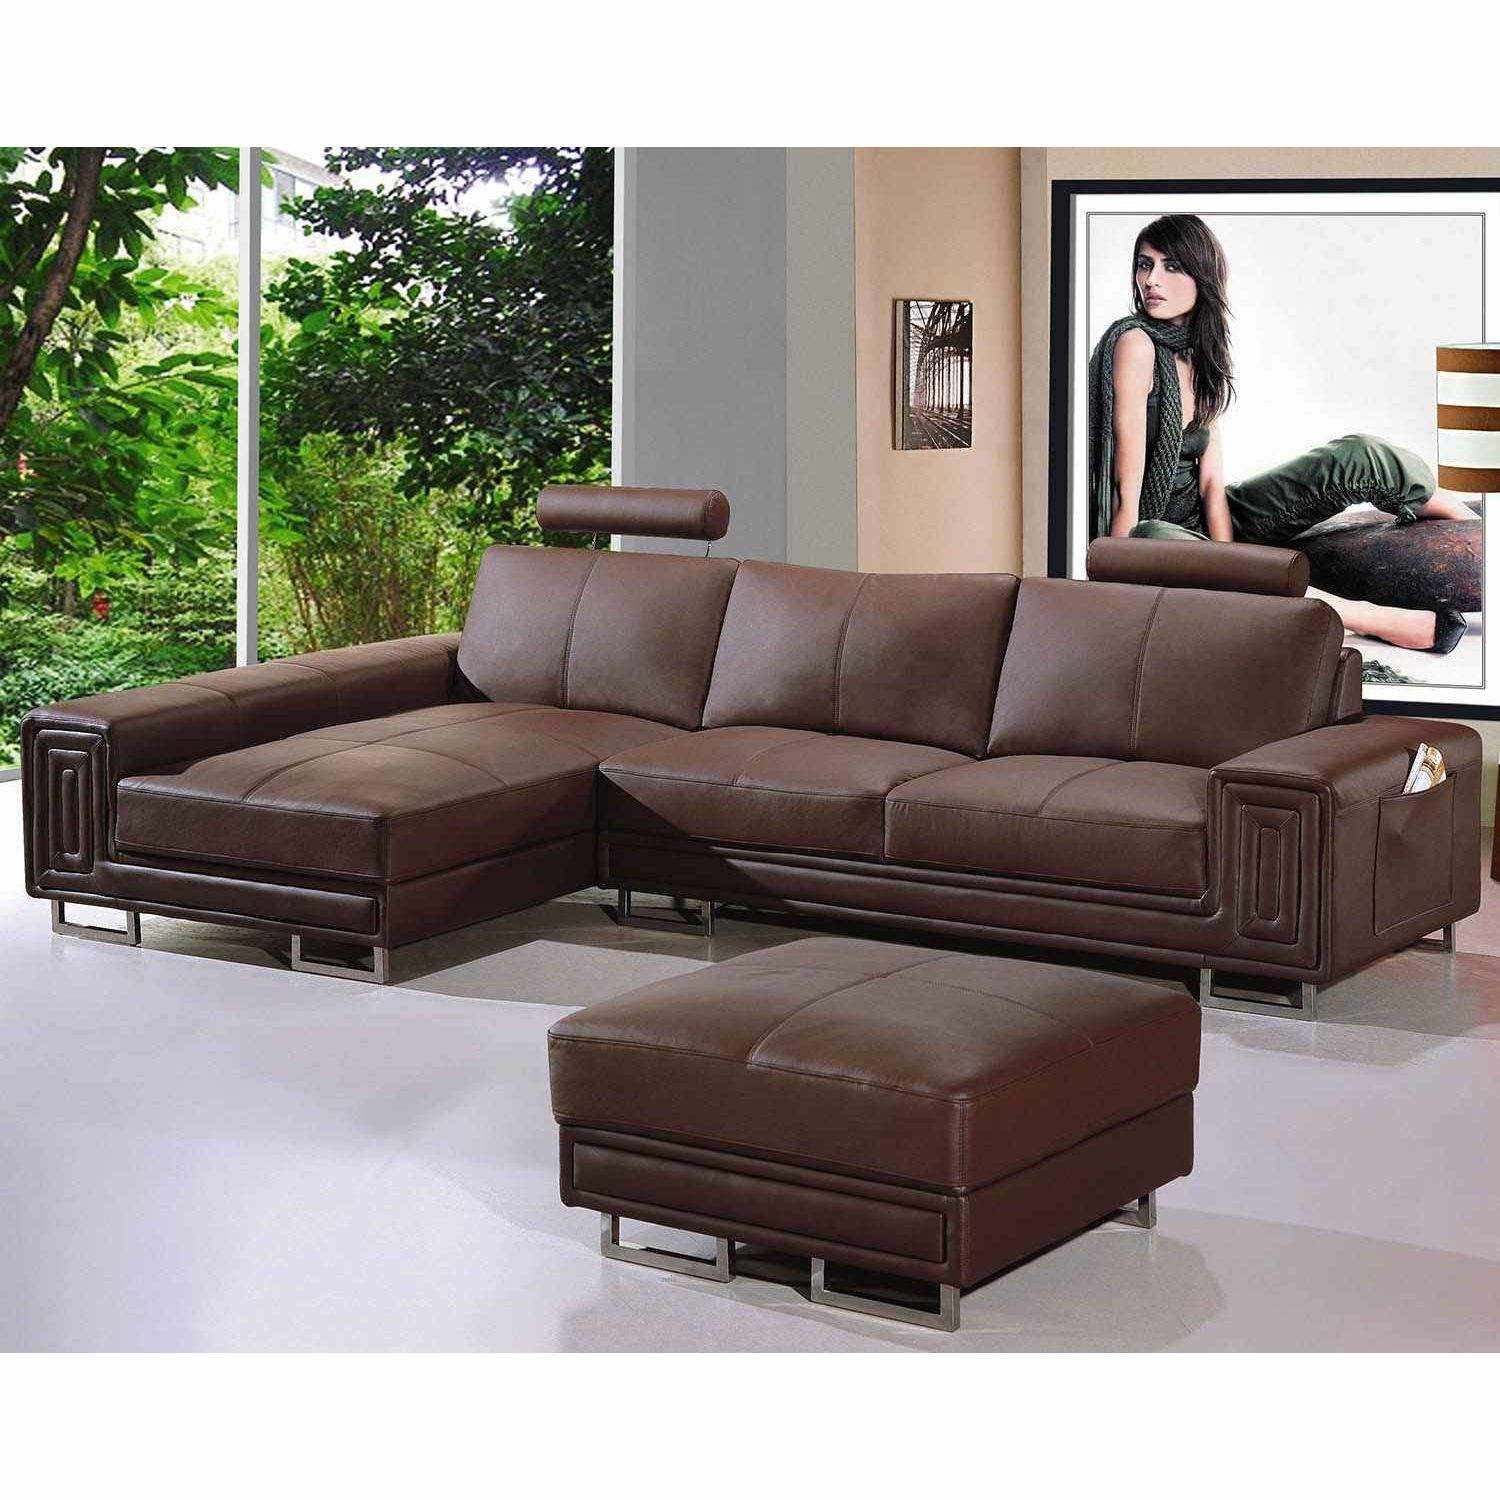 Deco in paris canape cuir d angle marron tetieres relax for Canape d angle cuir vieilli marron